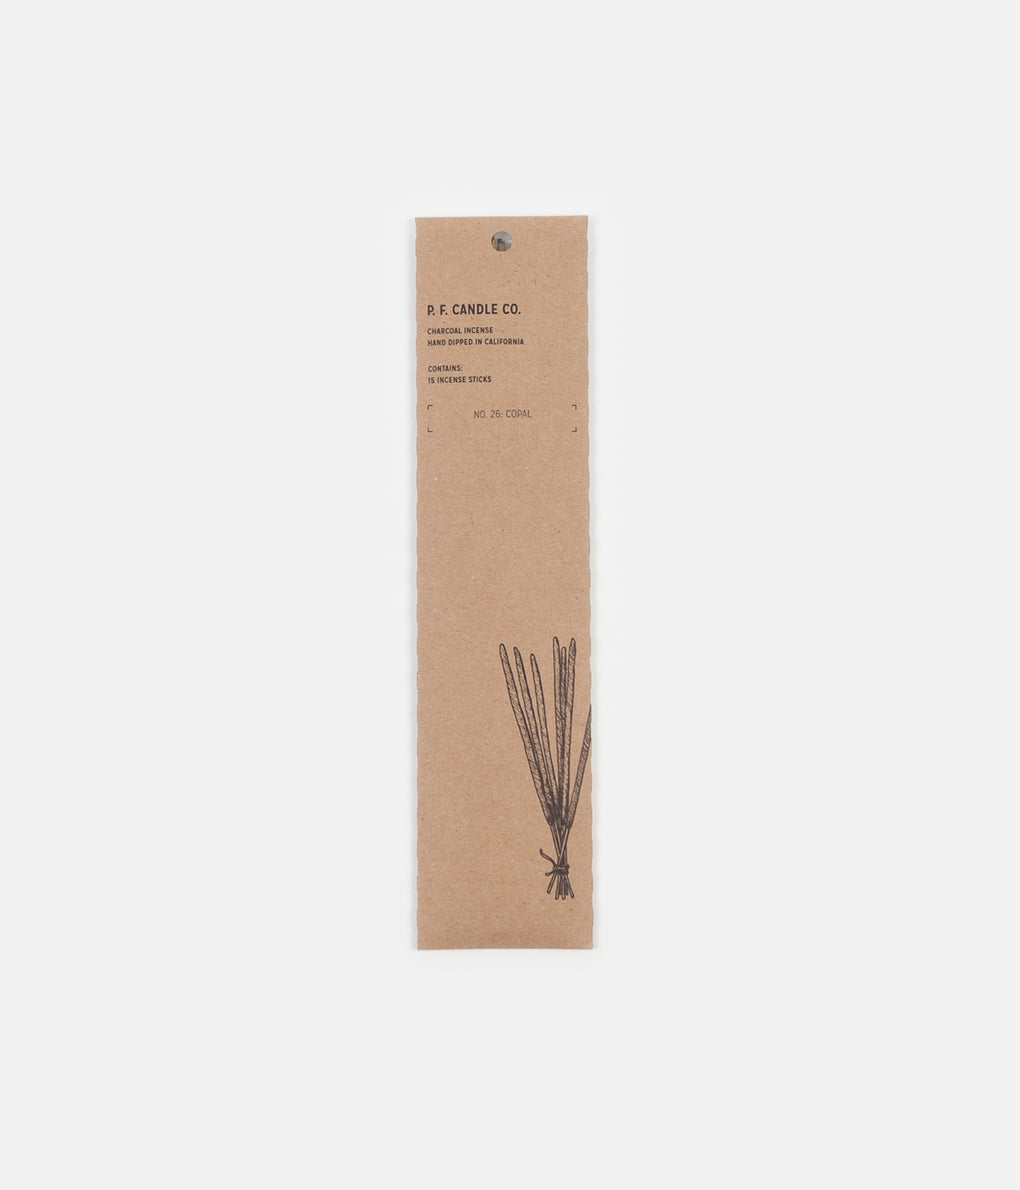 P.F. Candle Co. No. 26 Copal Incense - 15 Pack